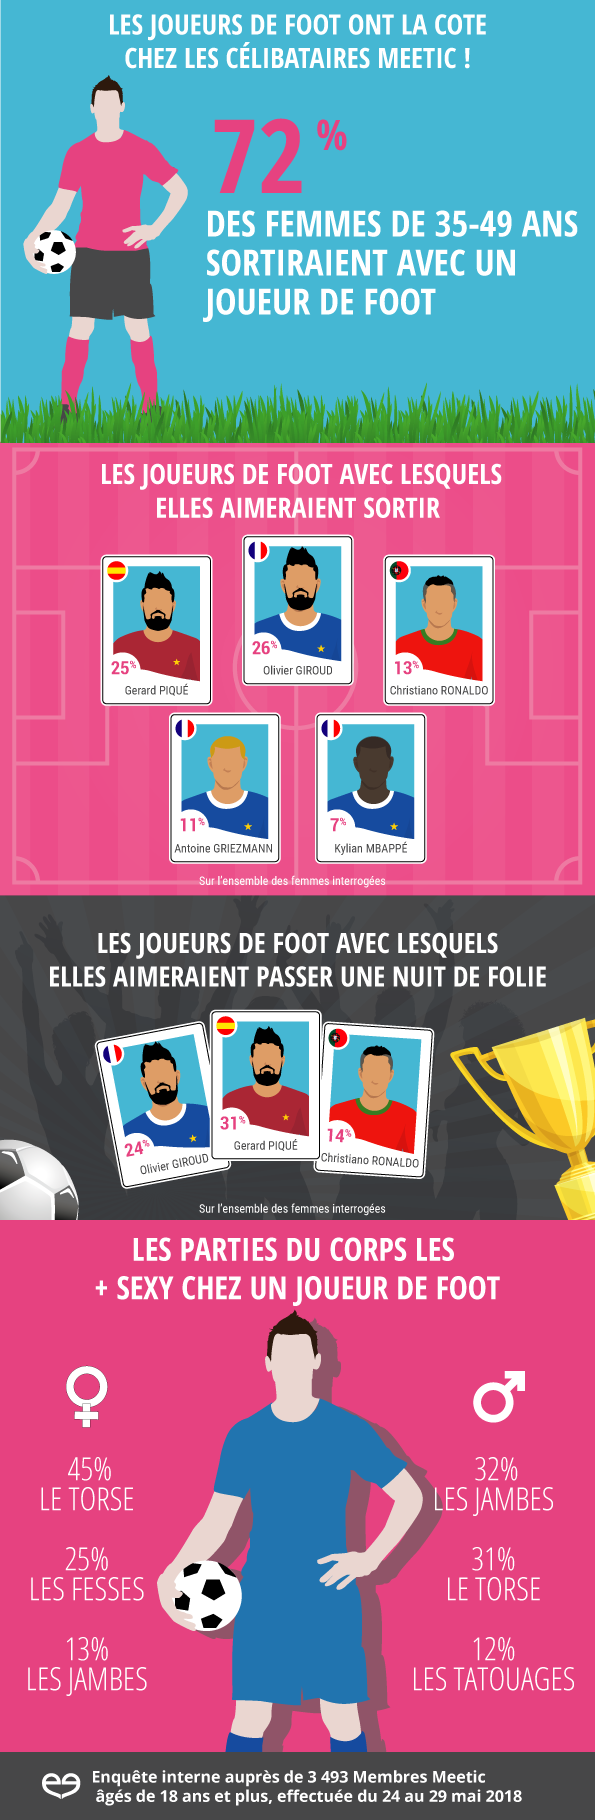 meetic_infographie_fifa_210618_0.jpg